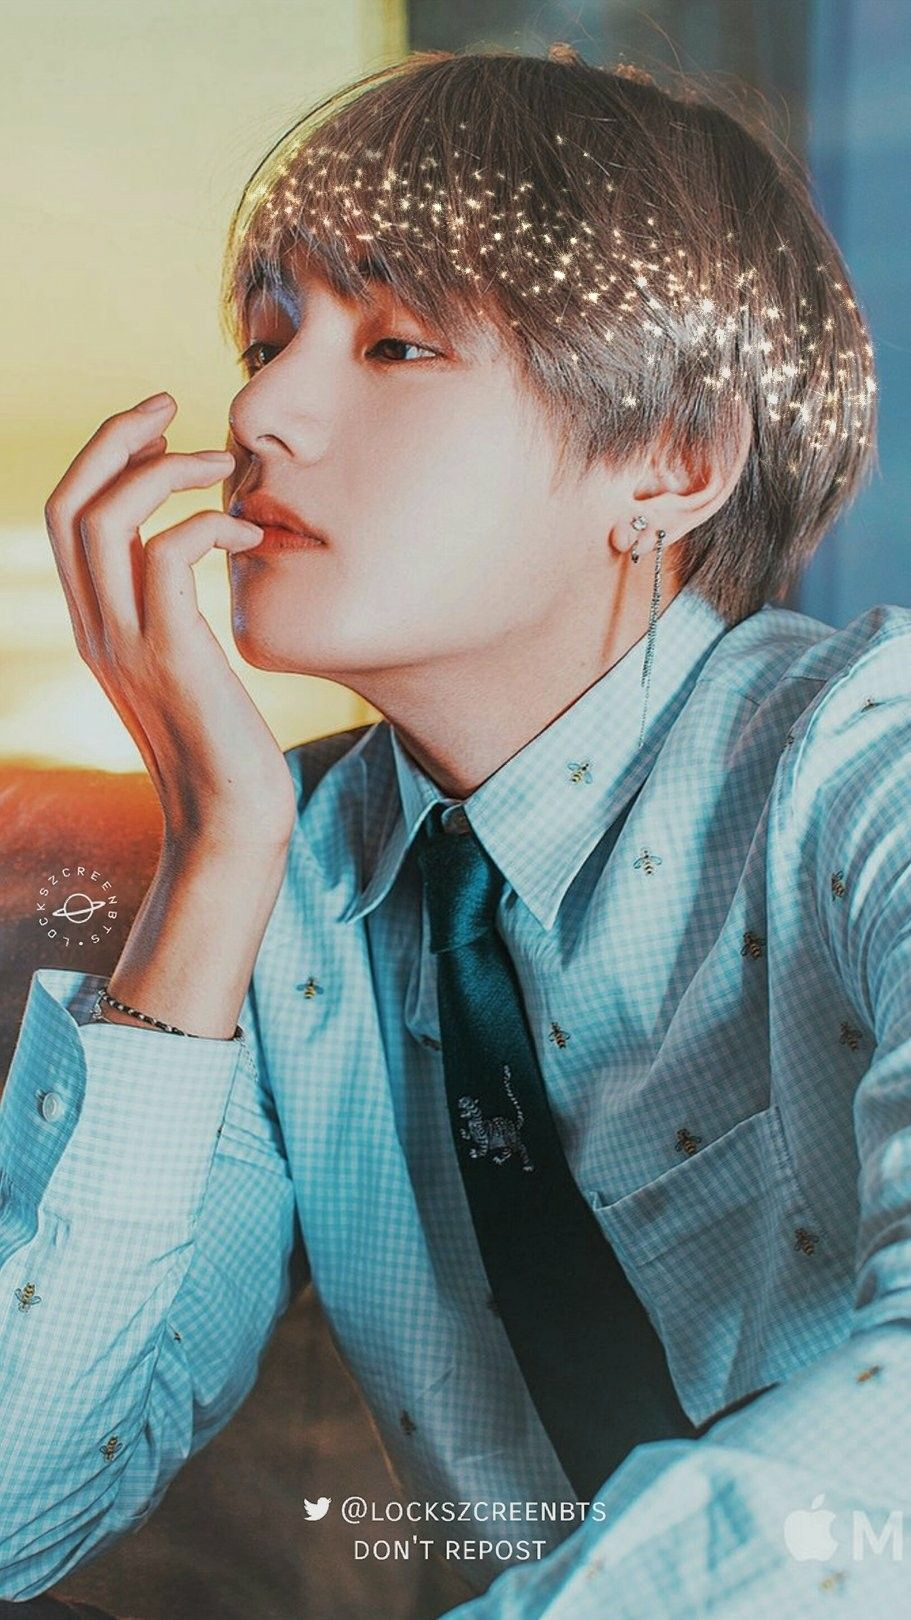 Taehyung So Handsome Cool Edited Bts Bts Taehyung